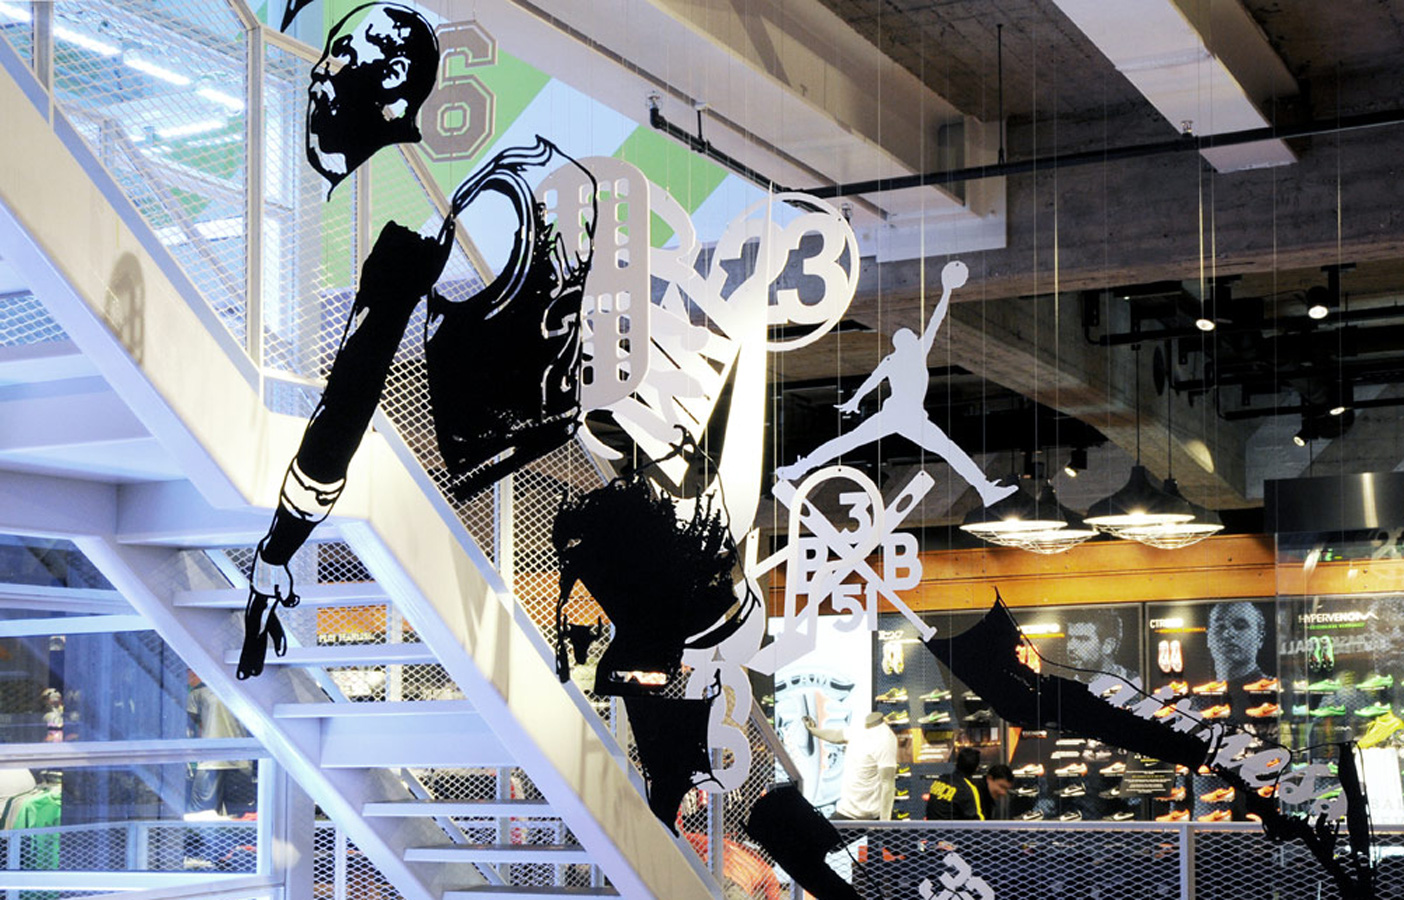 Aldworth James & Bond | Nike Store Berlin - Michael Murphy 'Broken' artwork suspended in-store